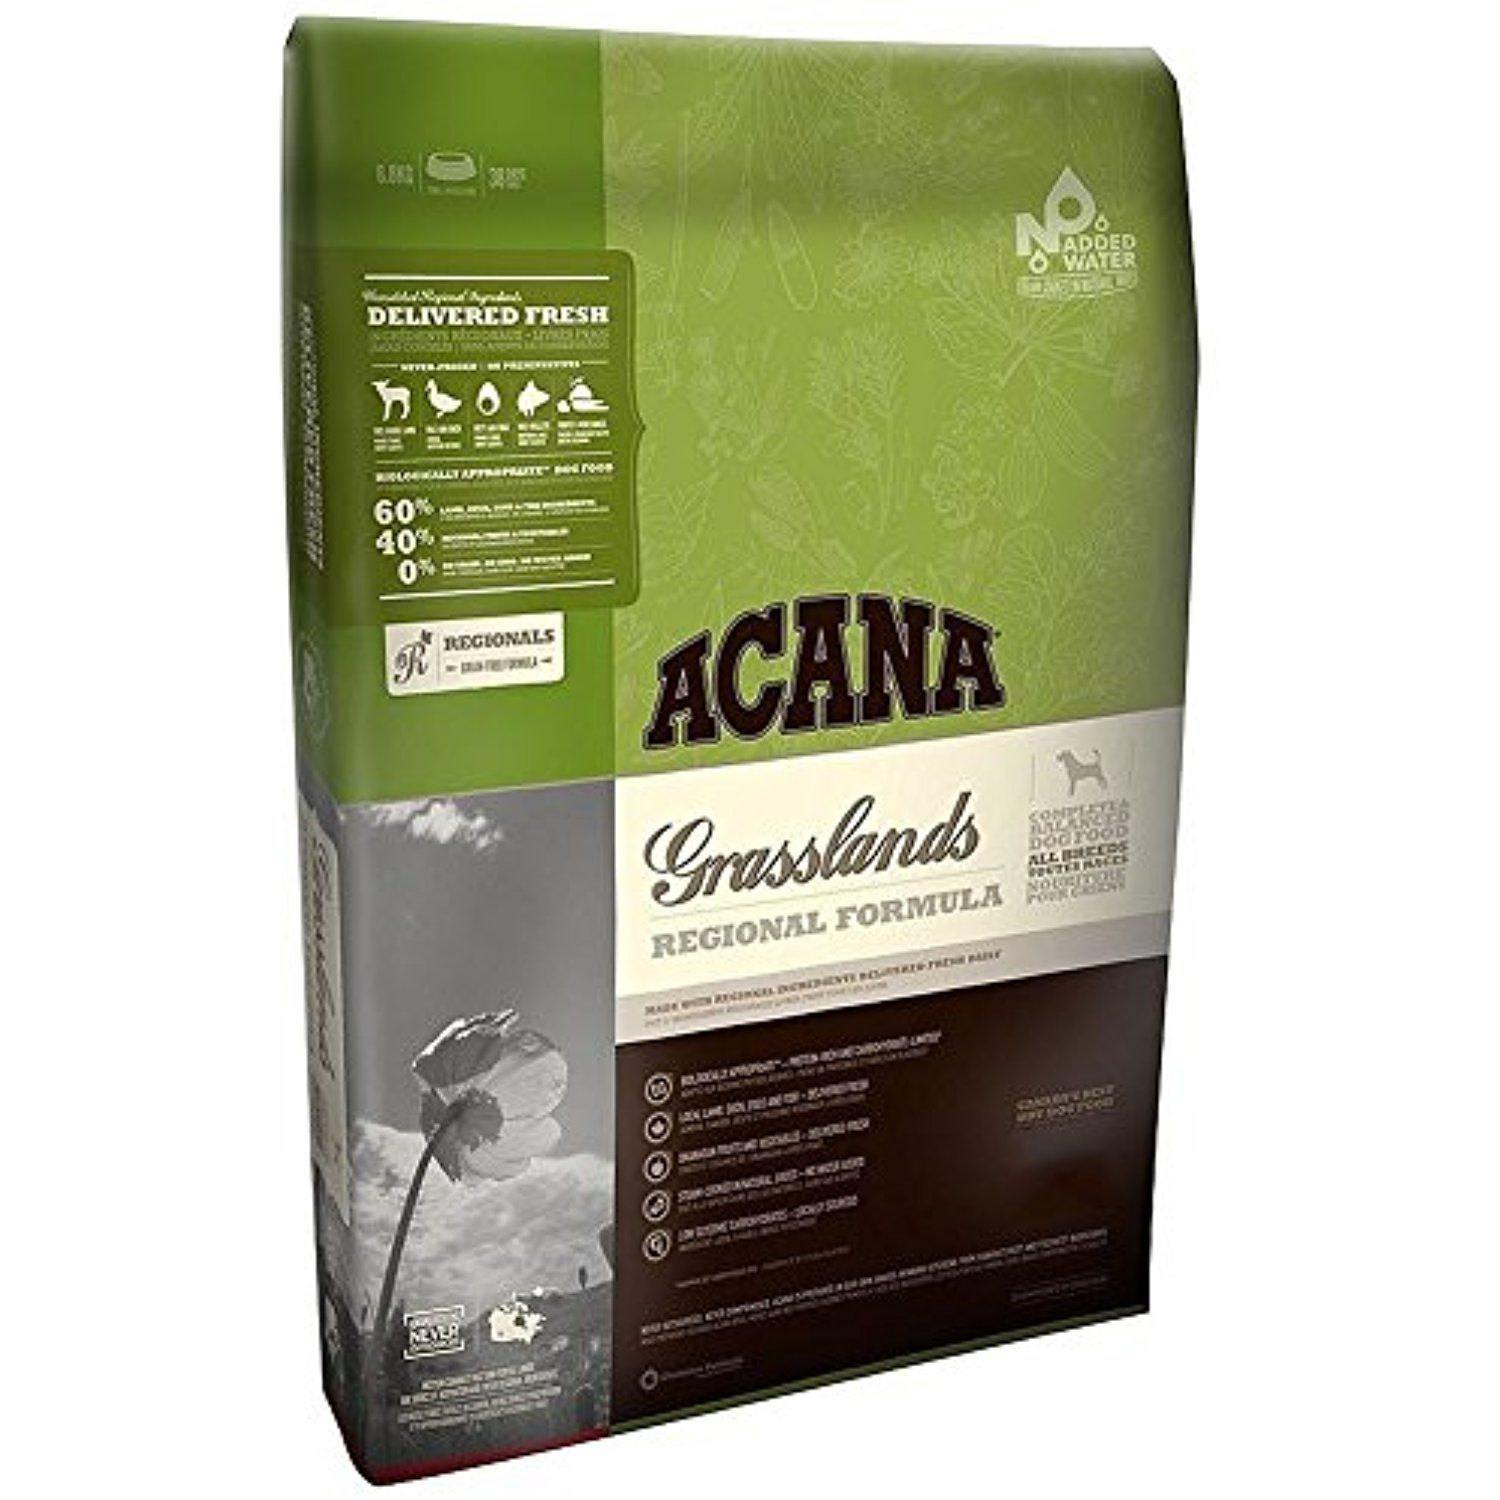 ACANA Grasslands Regional Formula GrainFree Dry Dog Food